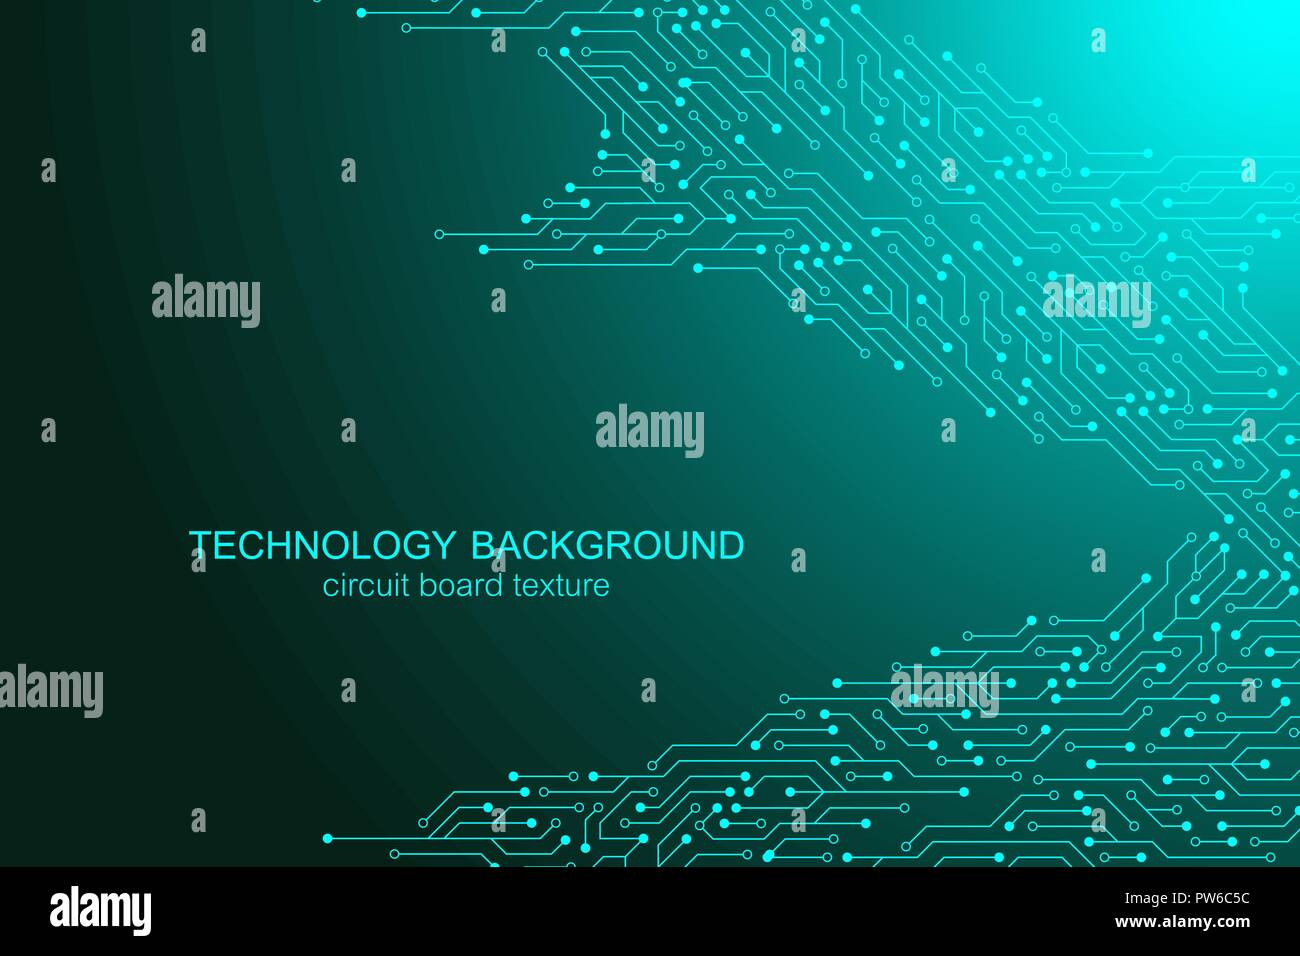 Computer Motherboard Vector Background With Circuit Board Electronic Printed Electronics Elements Texture For Technology Engineering Concept